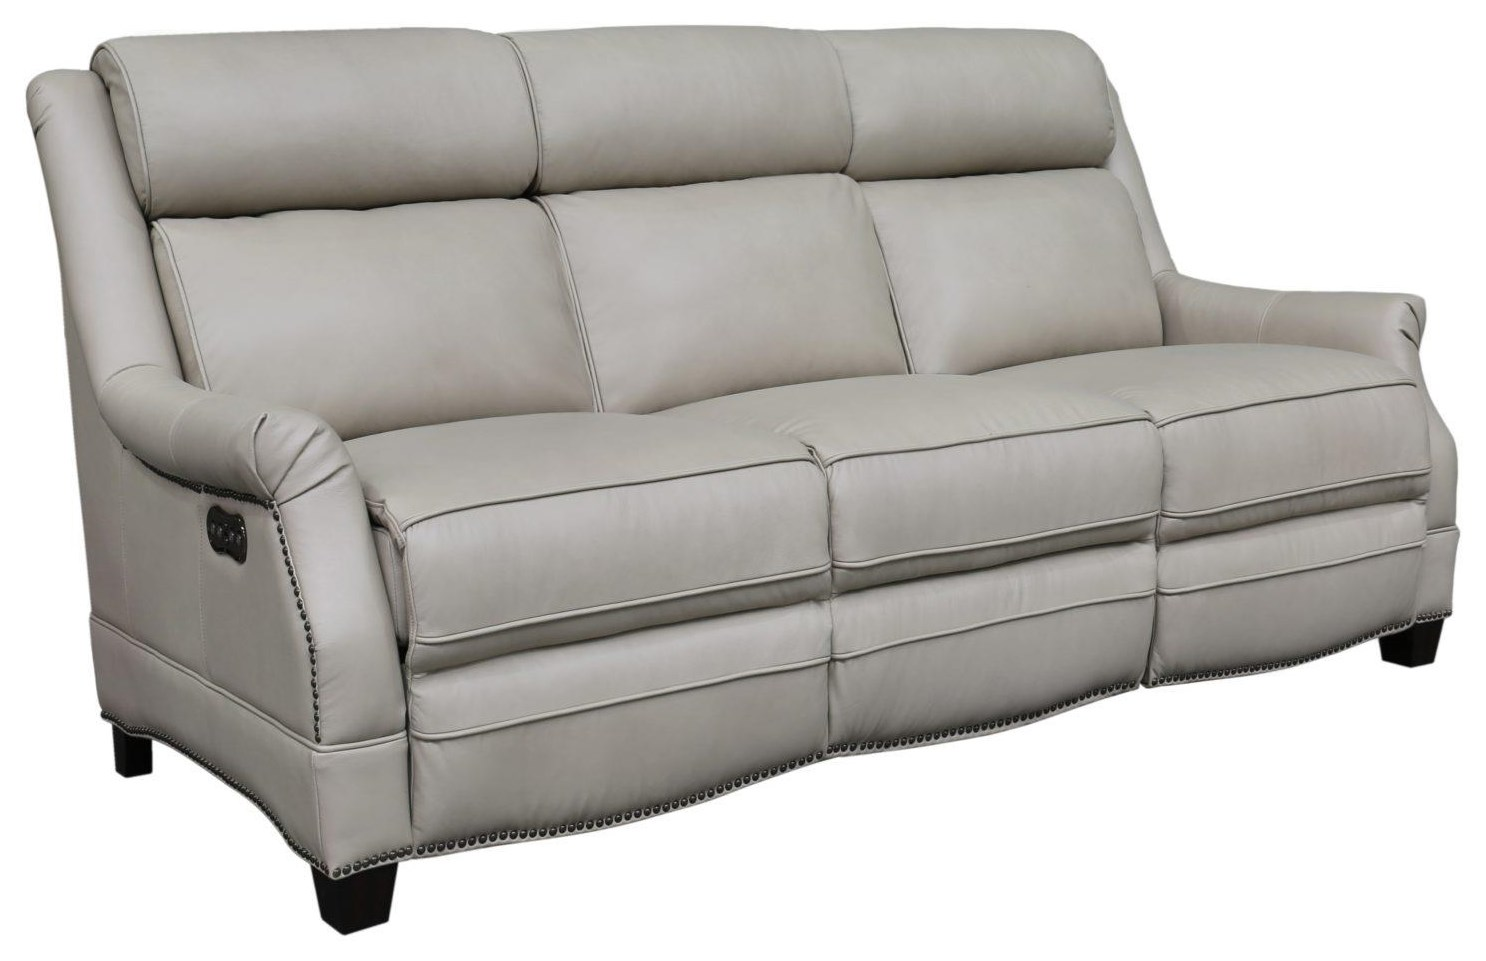 Warrendale power sofa by Barcalounger at Johnny Janosik